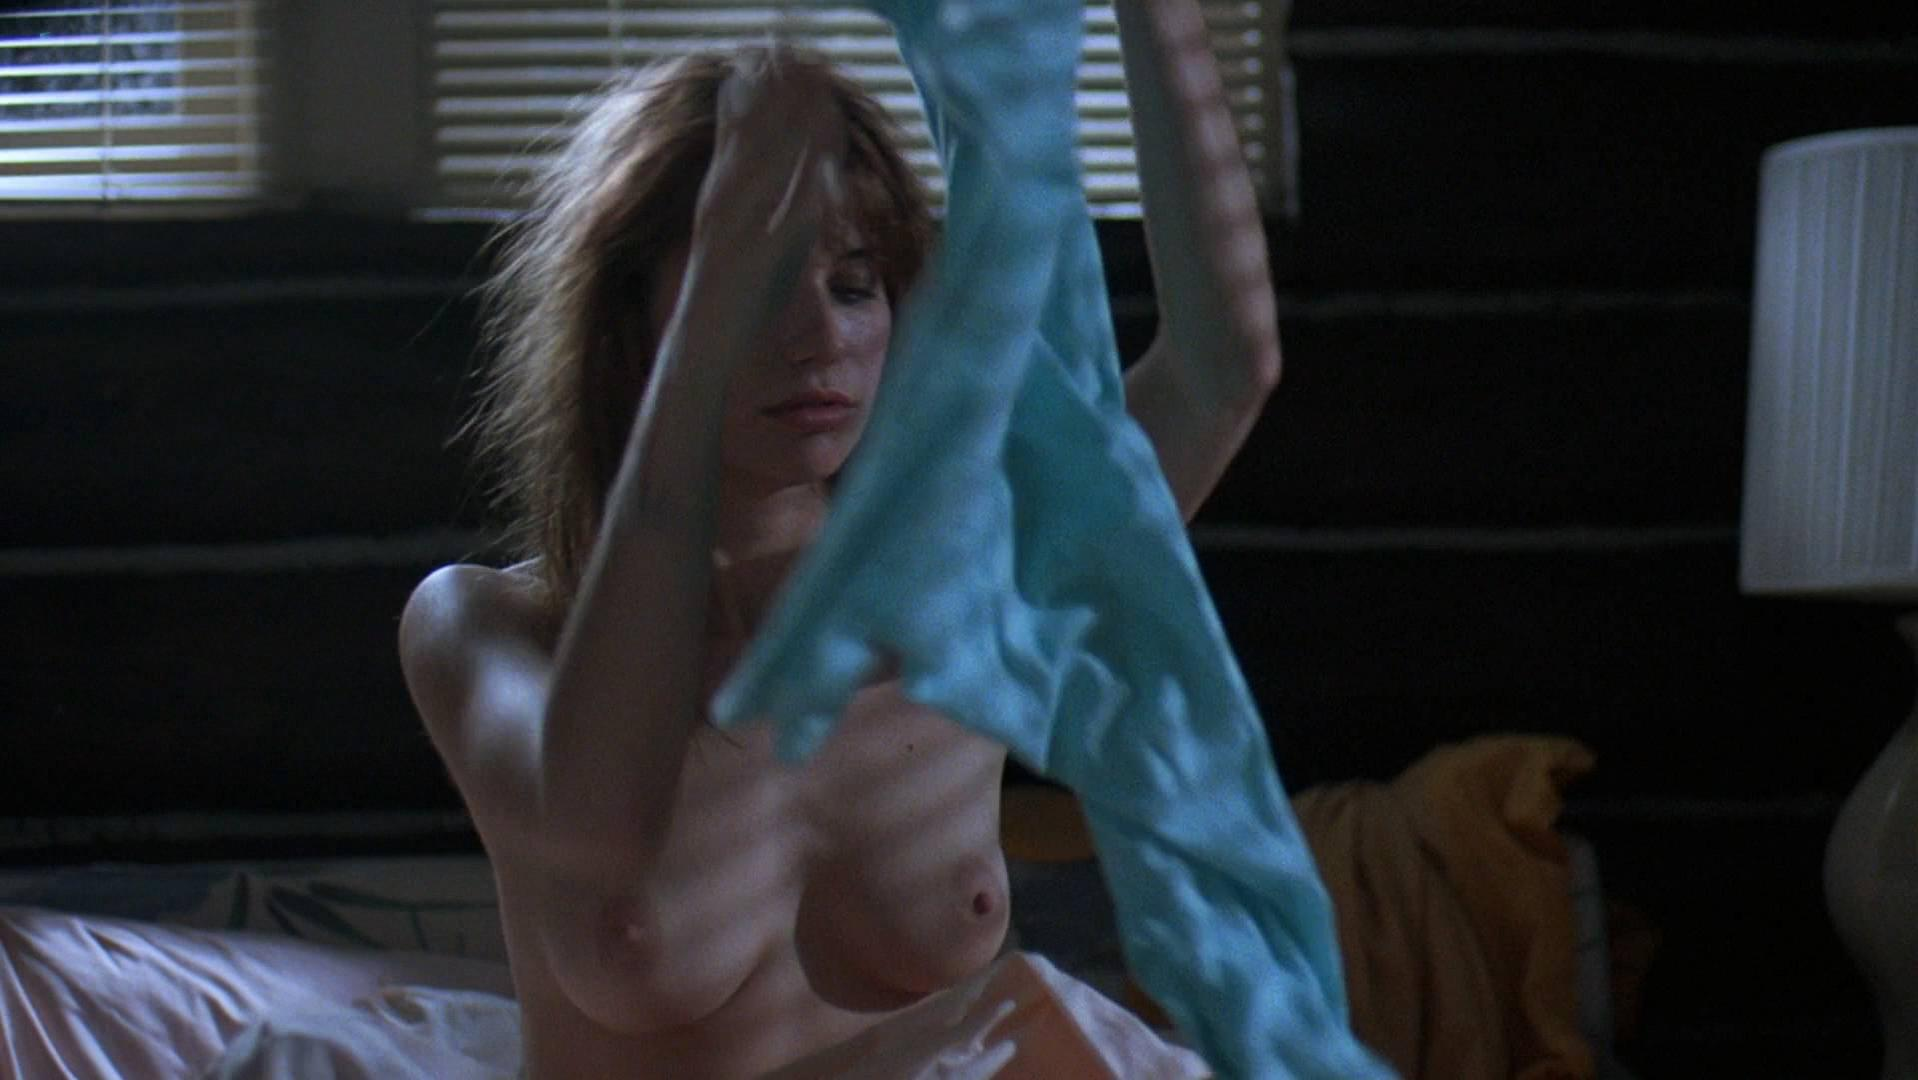 Elizabeth Kaitan nude, Heidi Kozak nude - Friday The 13th Part VII (1988)